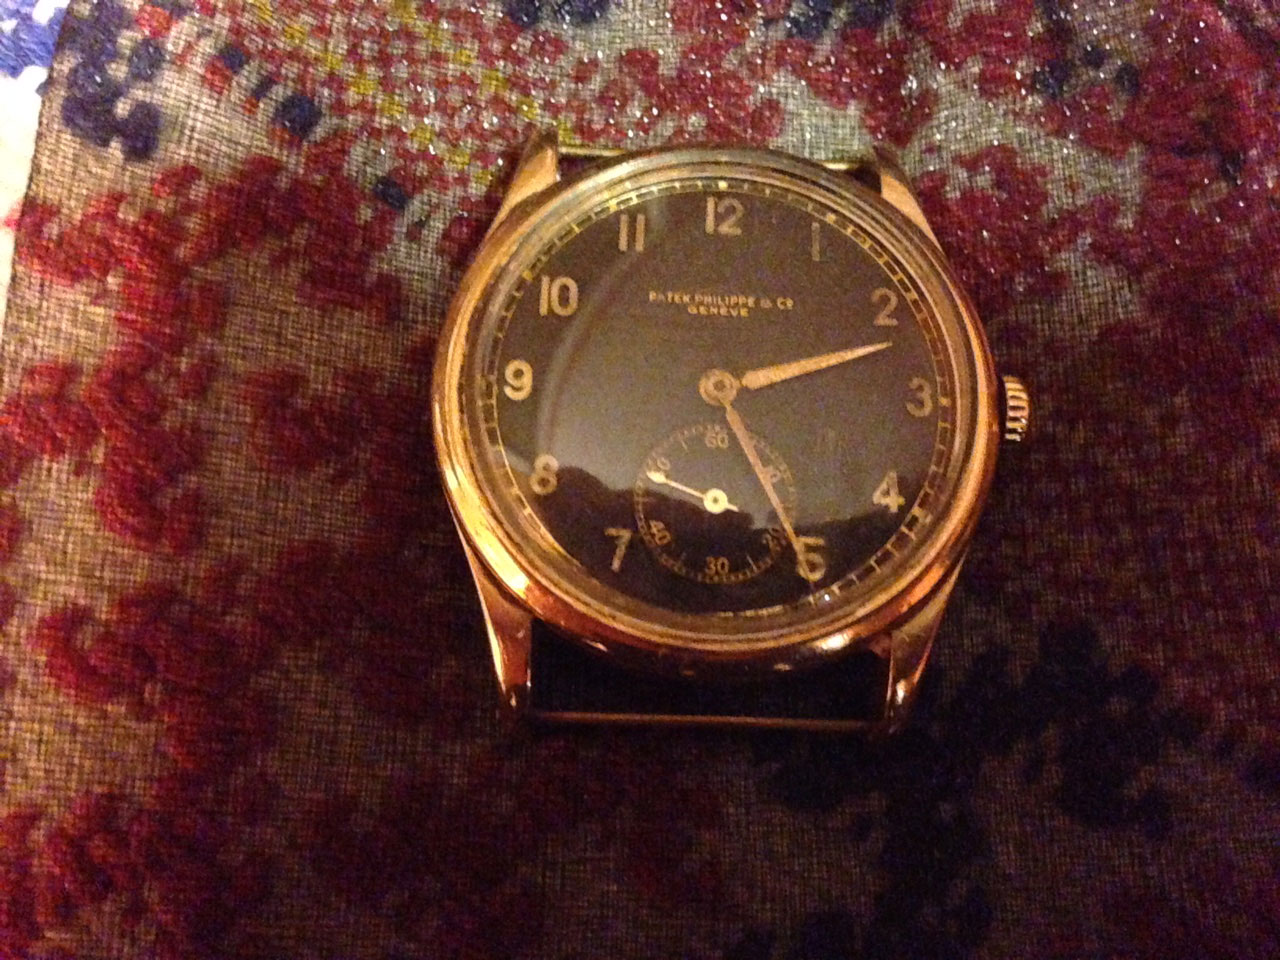 Can I Buy The Extraordinary Story of the Patek Philippe That Survived The Holocaust Low Price Replica